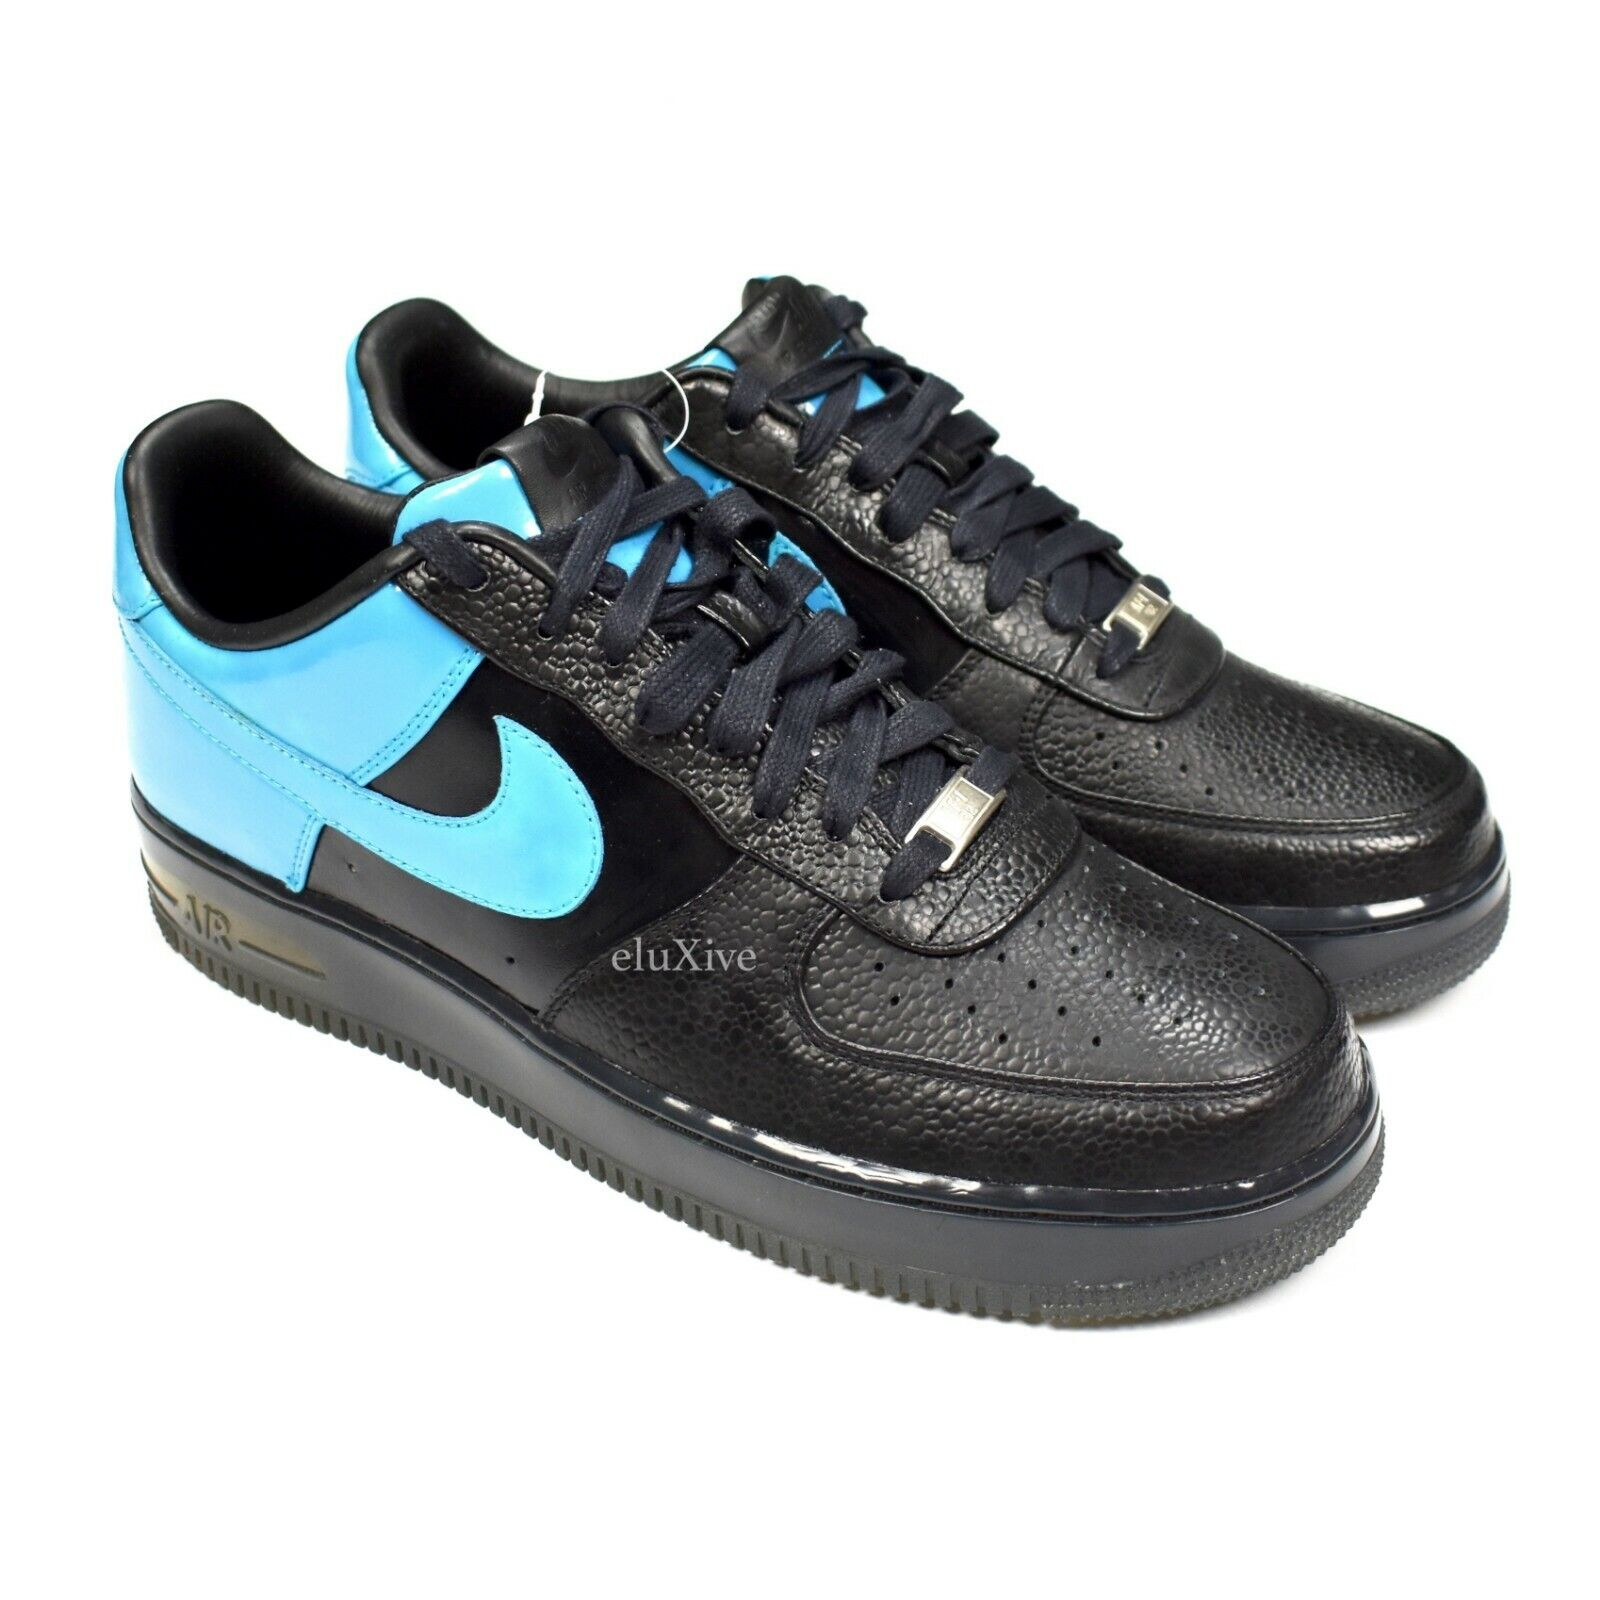 NWT Nike Air Force 1 Supreme Max Black Laser bluee All Star 2008 10.5 AUTHENTIC